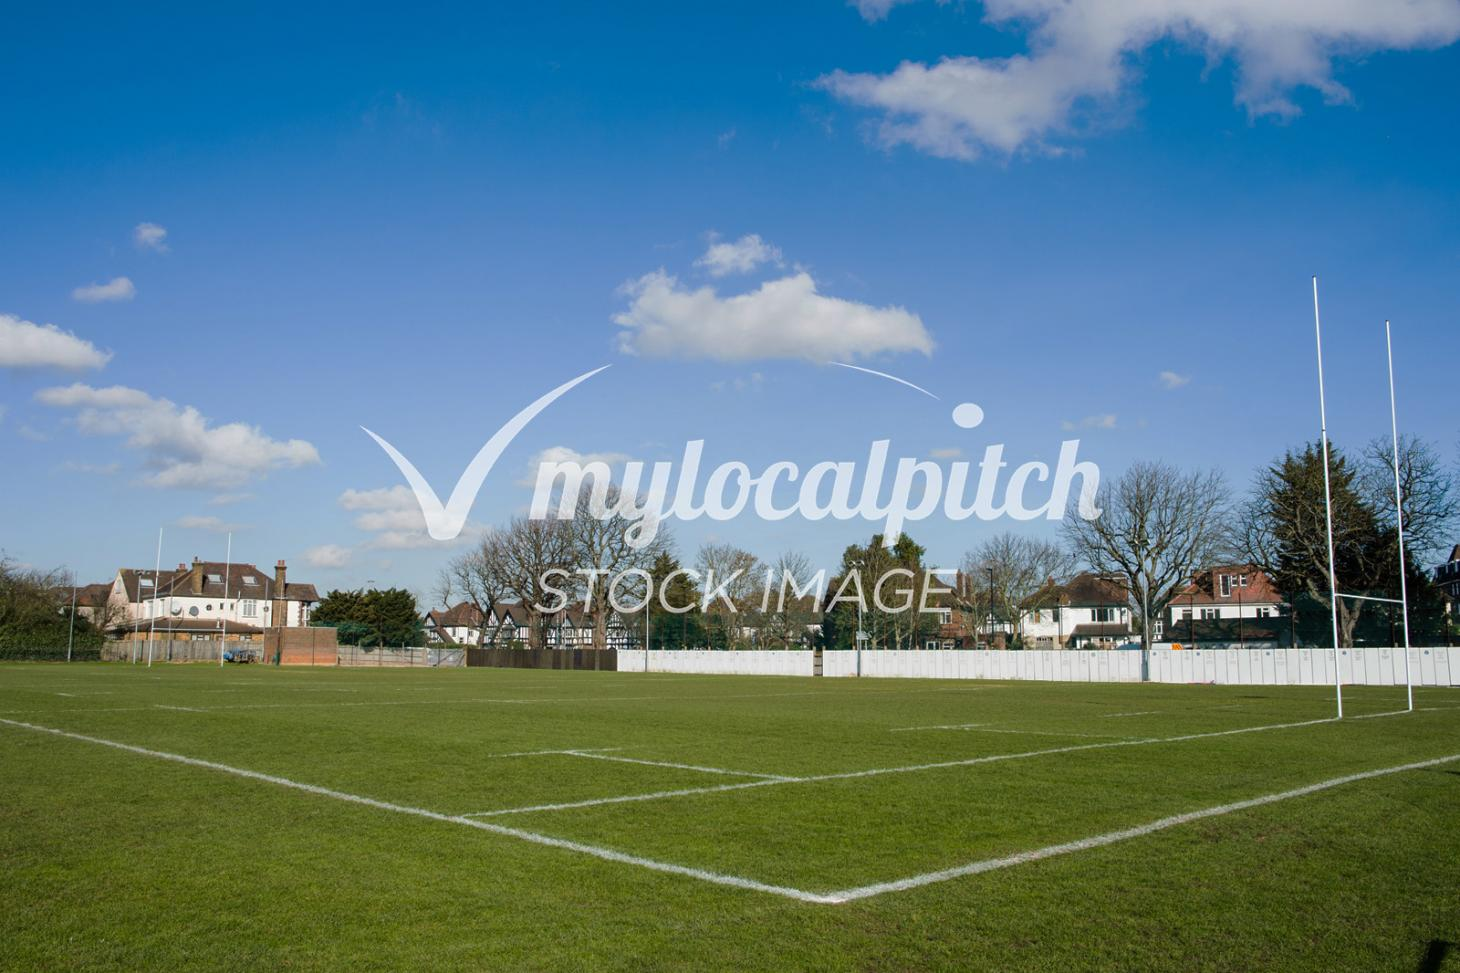 Imperial College - Heston Venue Union | Grass rugby pitch